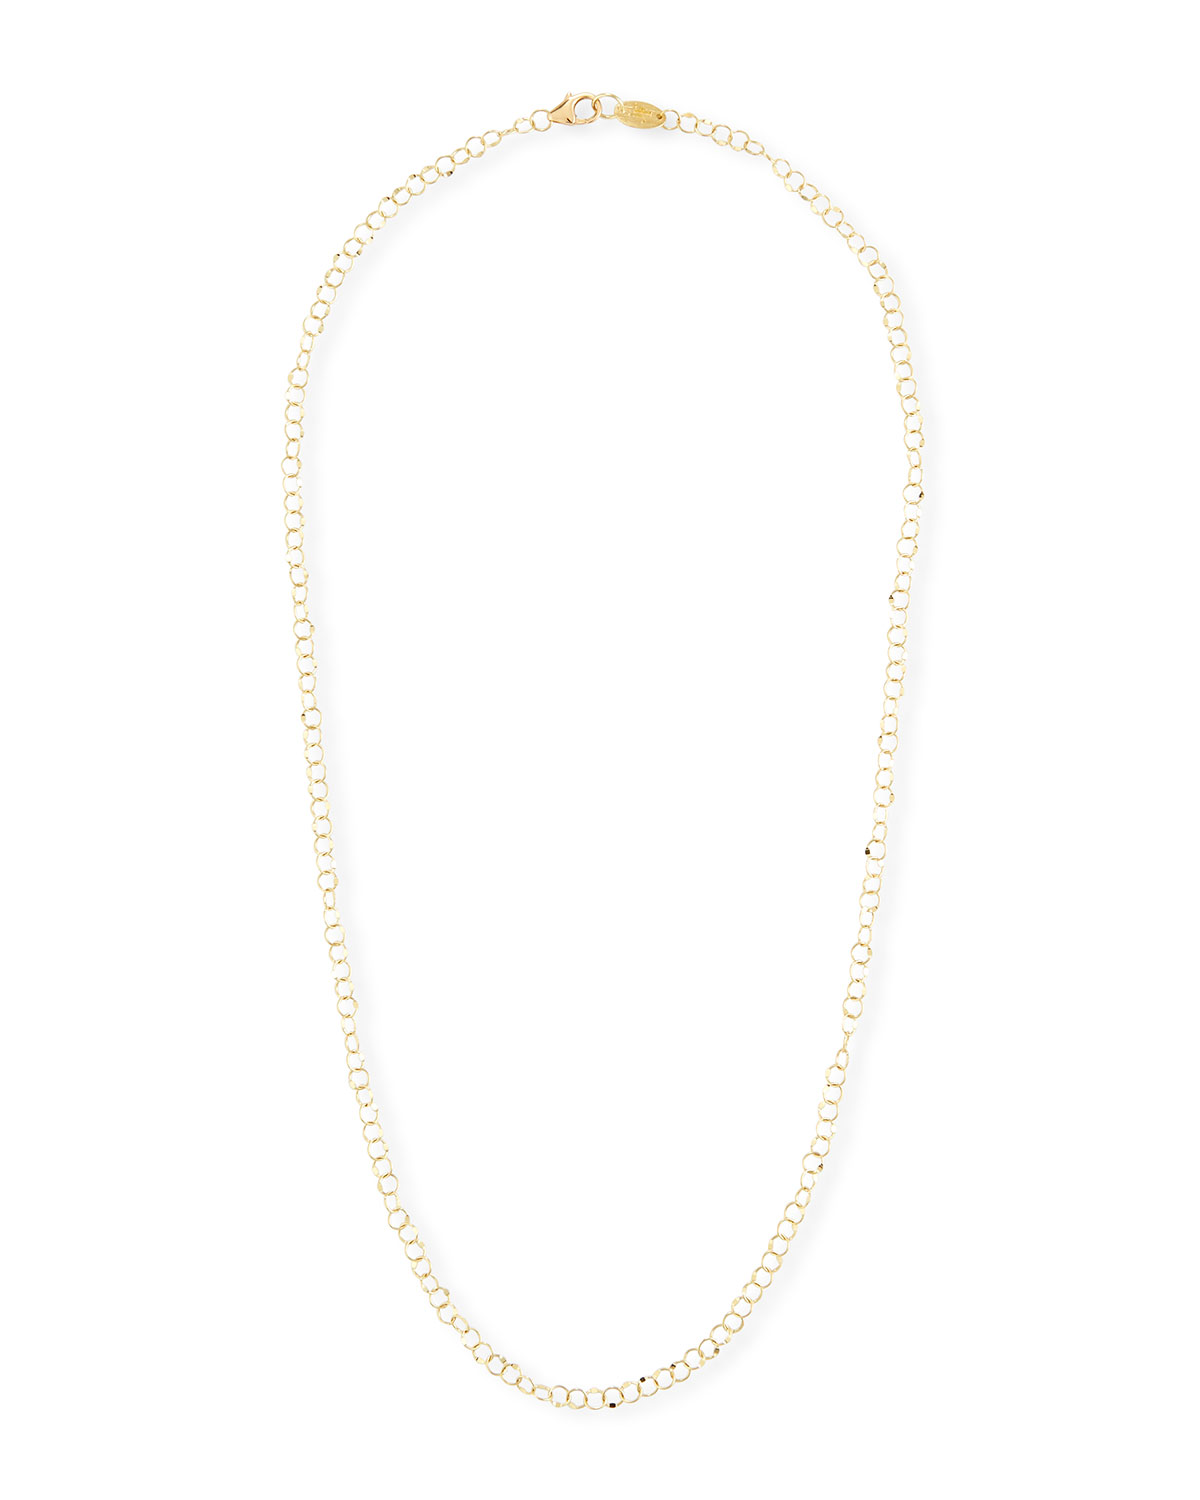 18k Gold Hammered Circle Chain Necklace